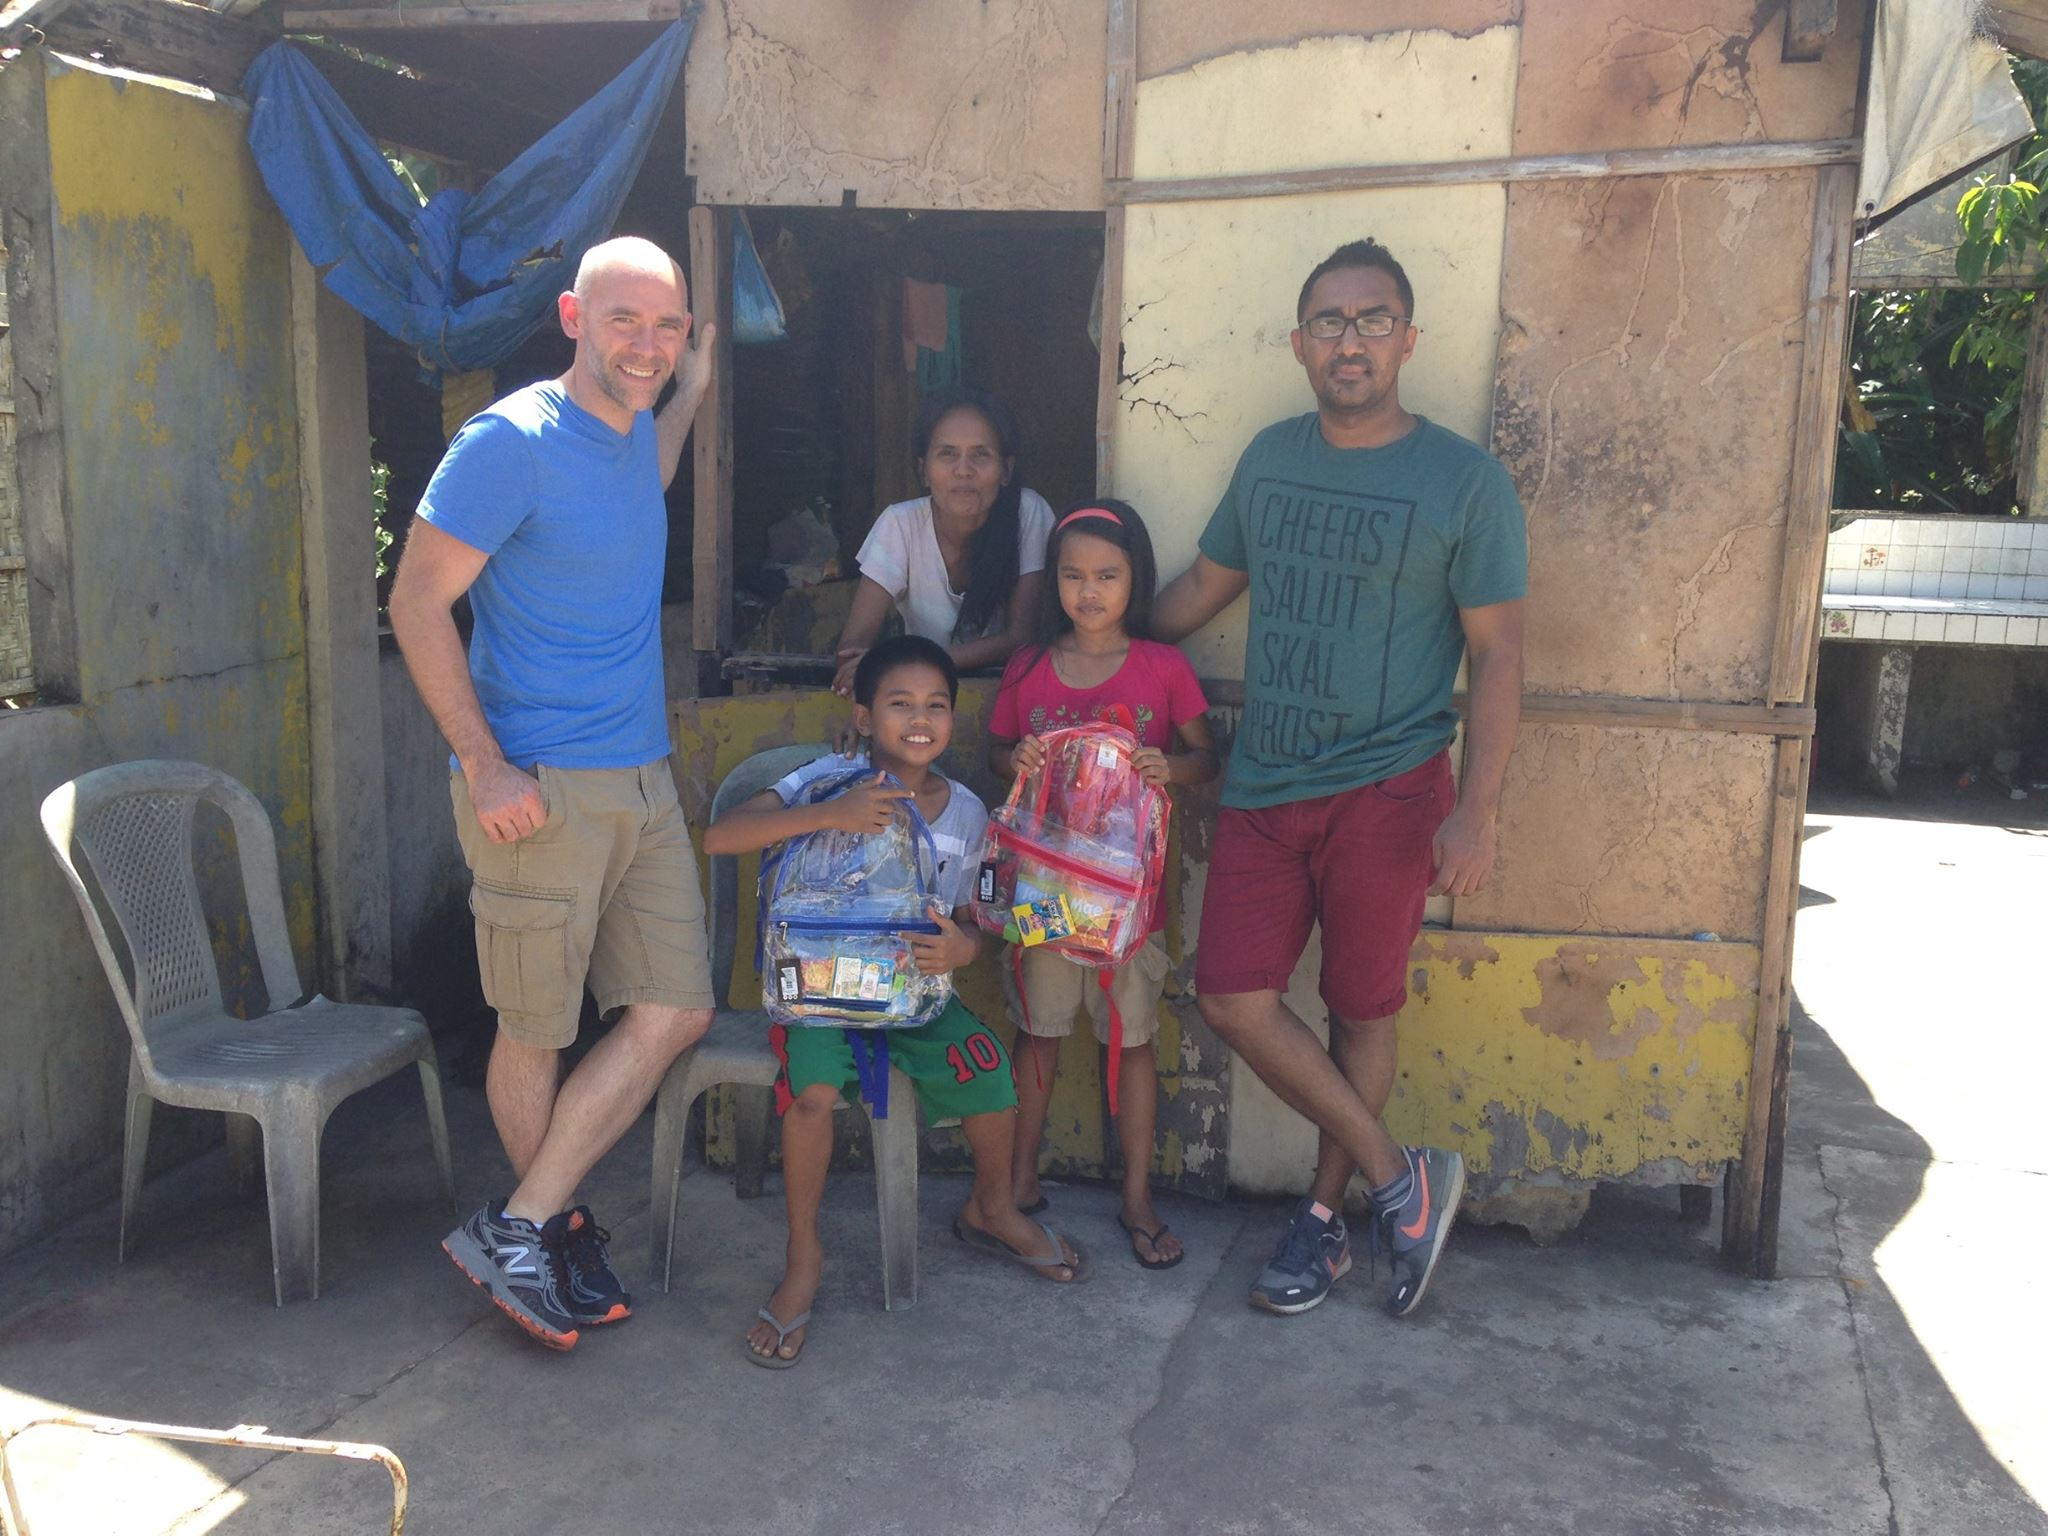 Keith and his friend Mo delivering some school supplies to a family of children in need in the neighborhood.